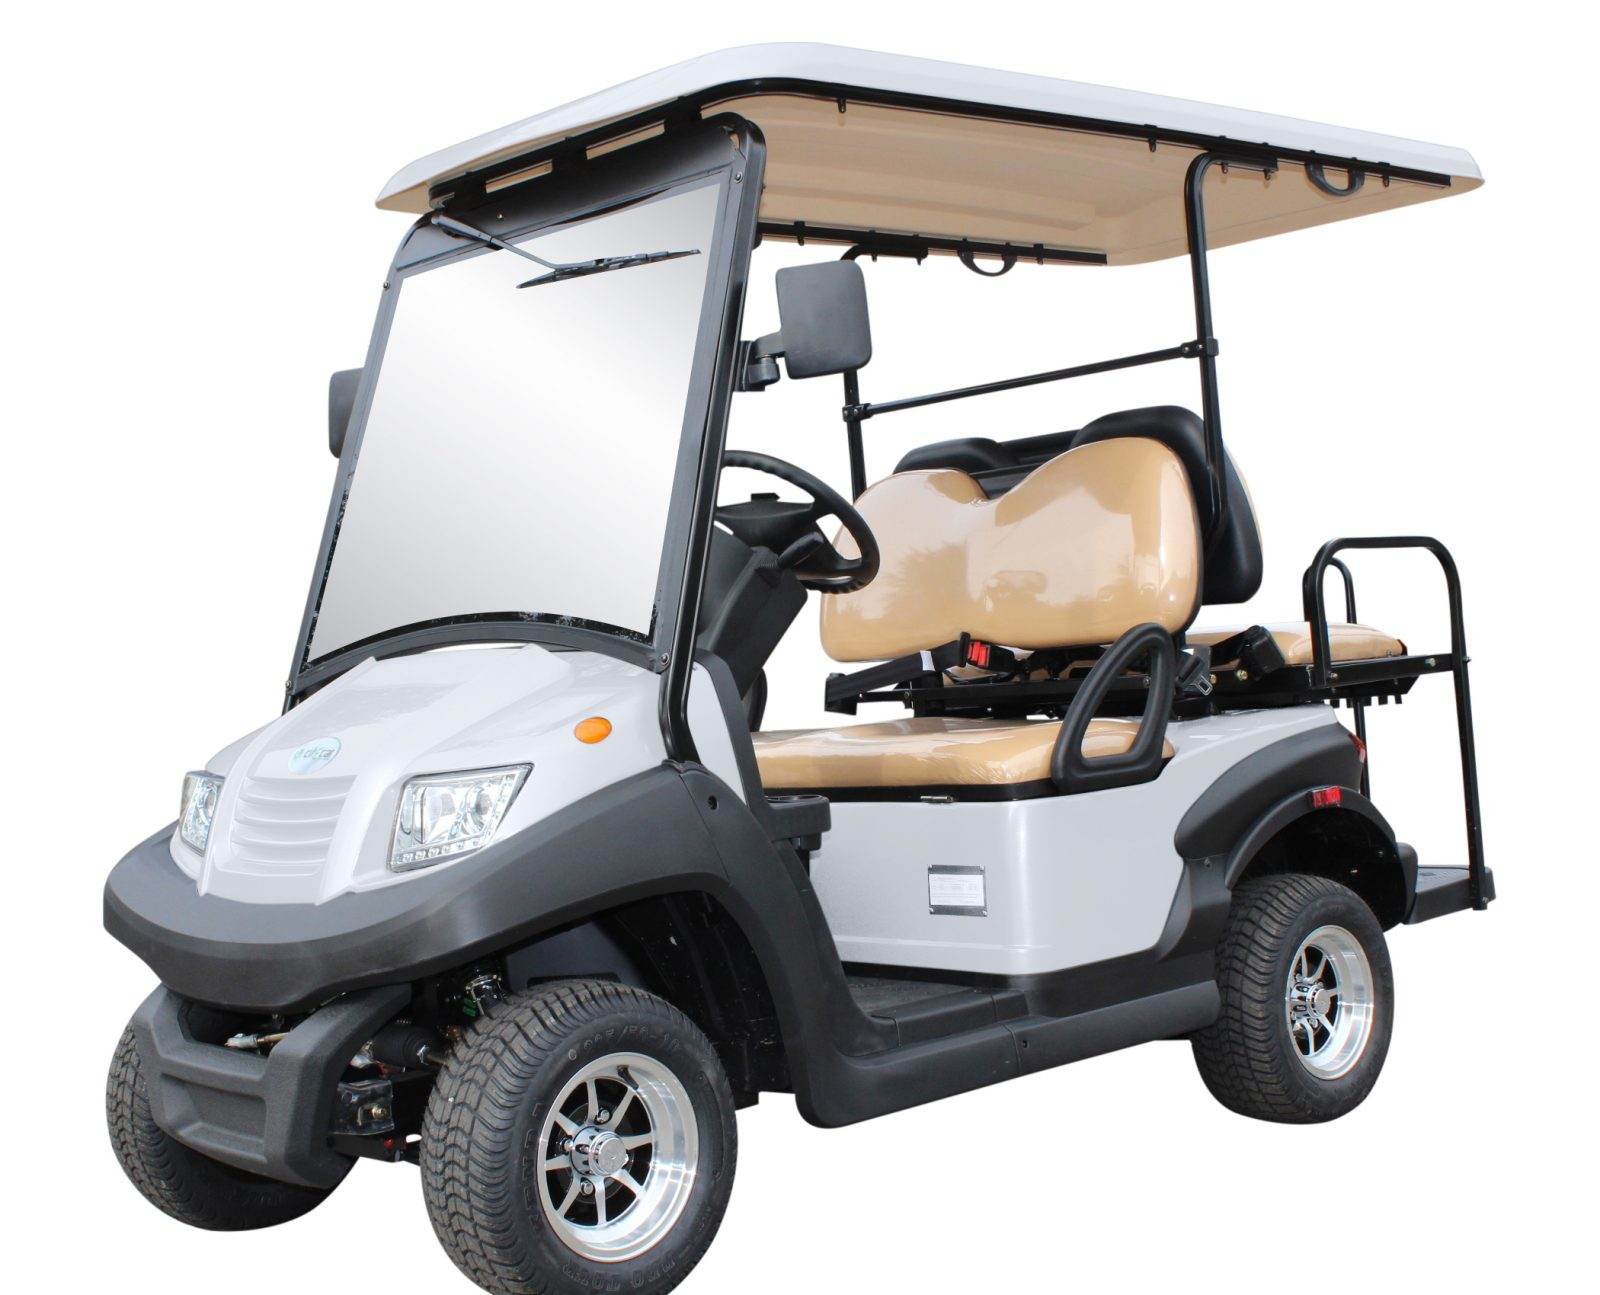 Bintelli 4pr Sport Street Legal Golf Cart